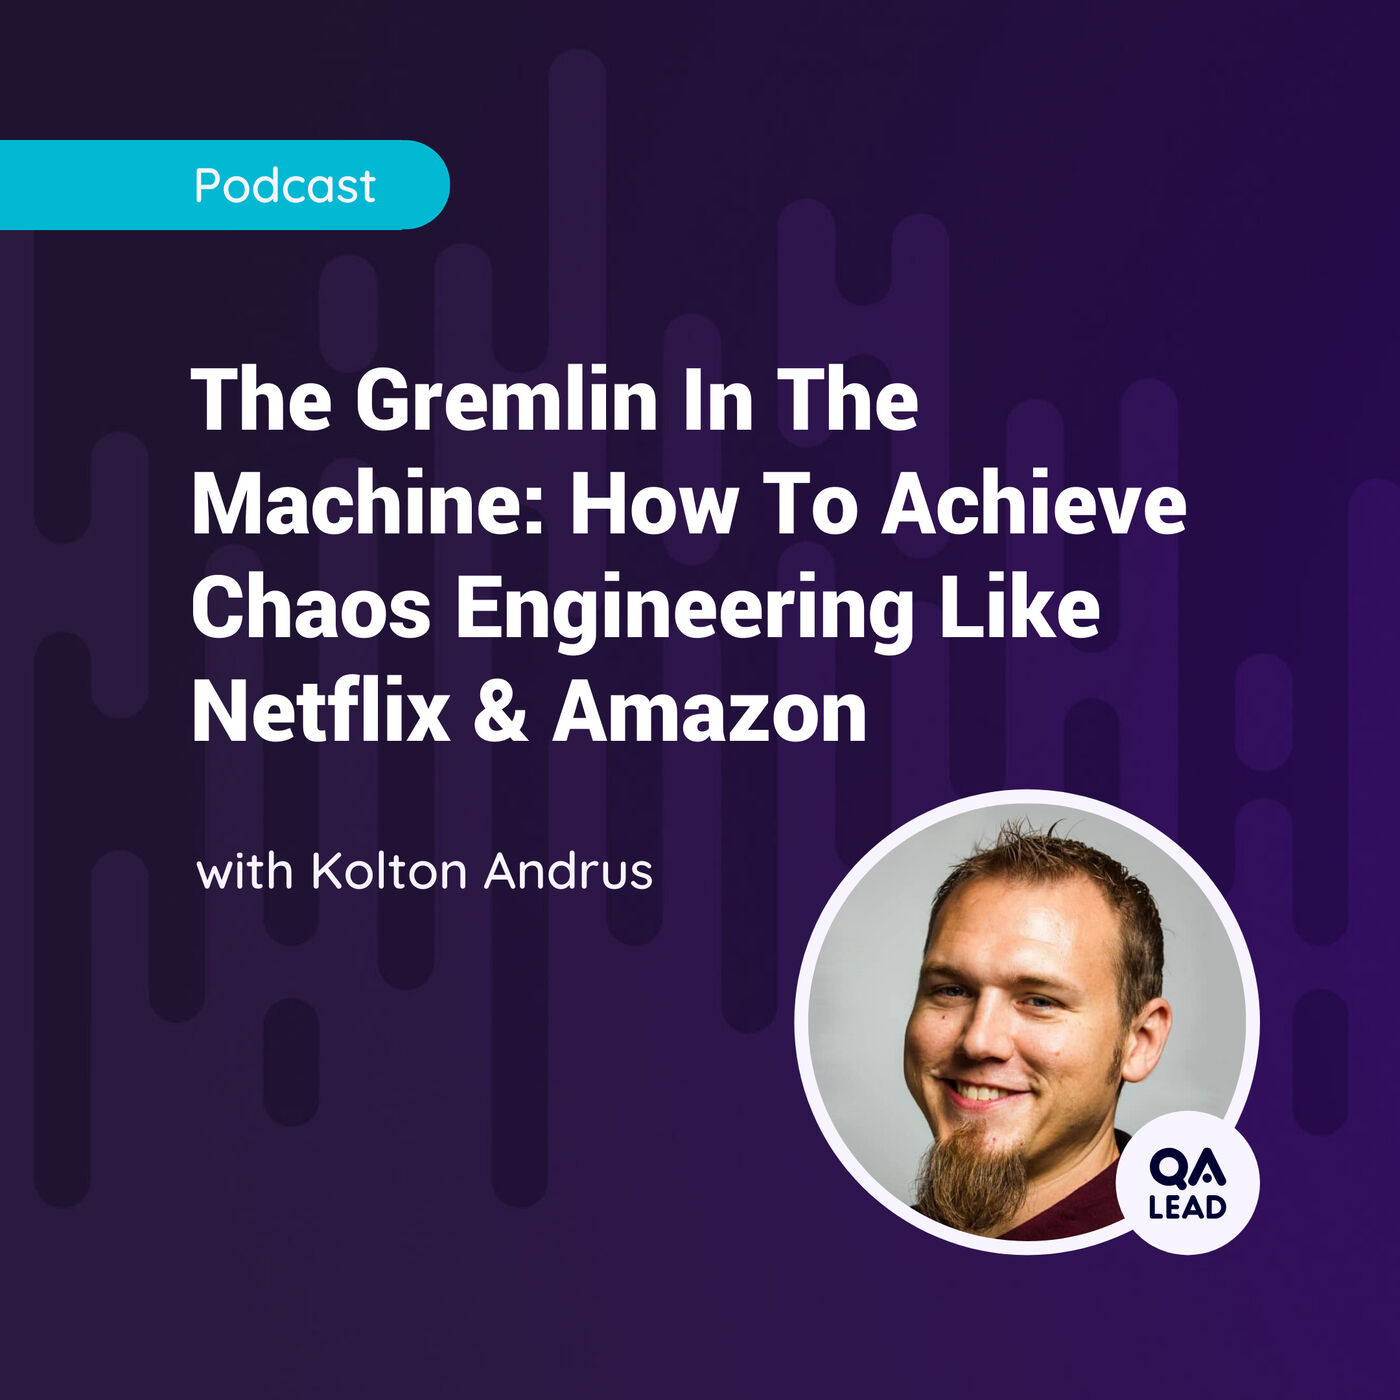 The Gremlin In The Machine: How To Achieve Chaos Engineering Like Netflix & Amazon (with Kolton Andrus from Gremlin)